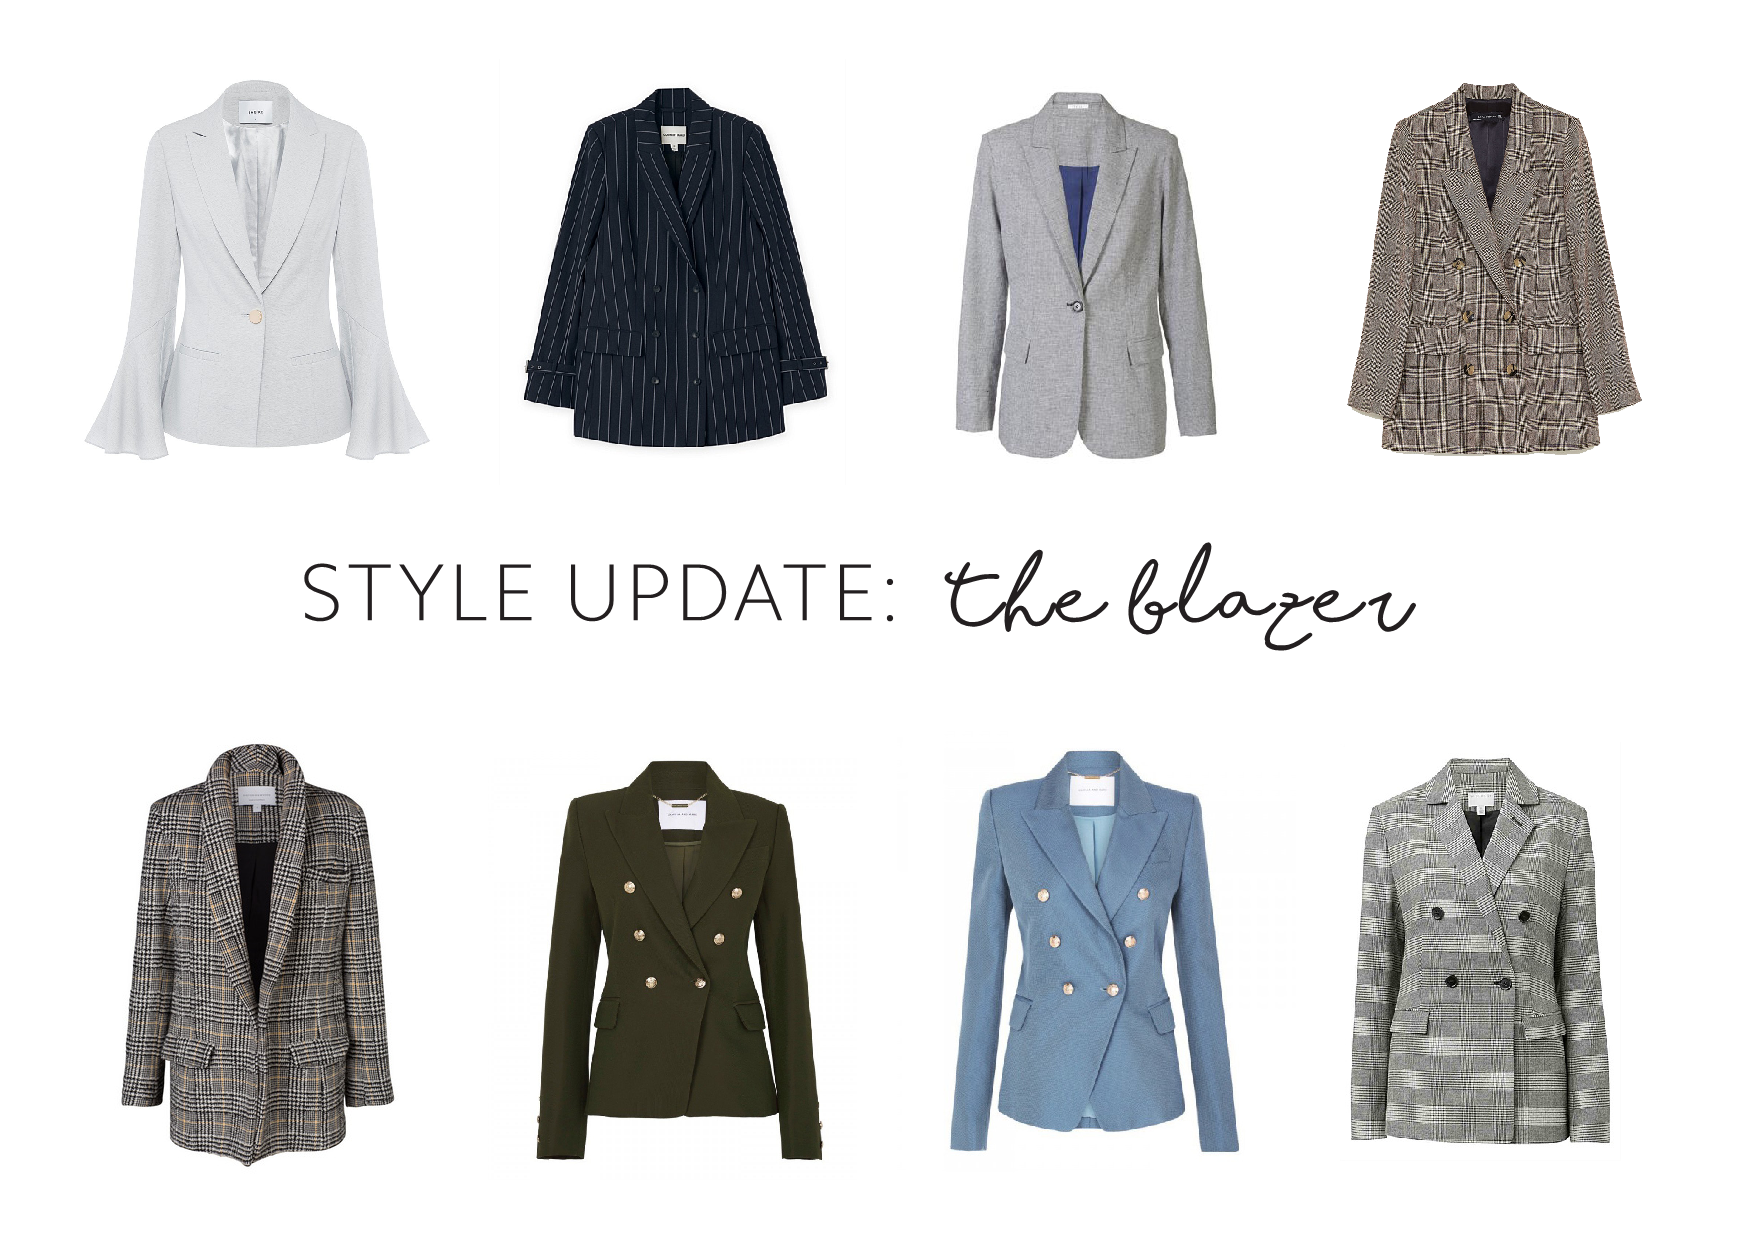 STYLE UPDATE - THE BLAZER_v1.2_1